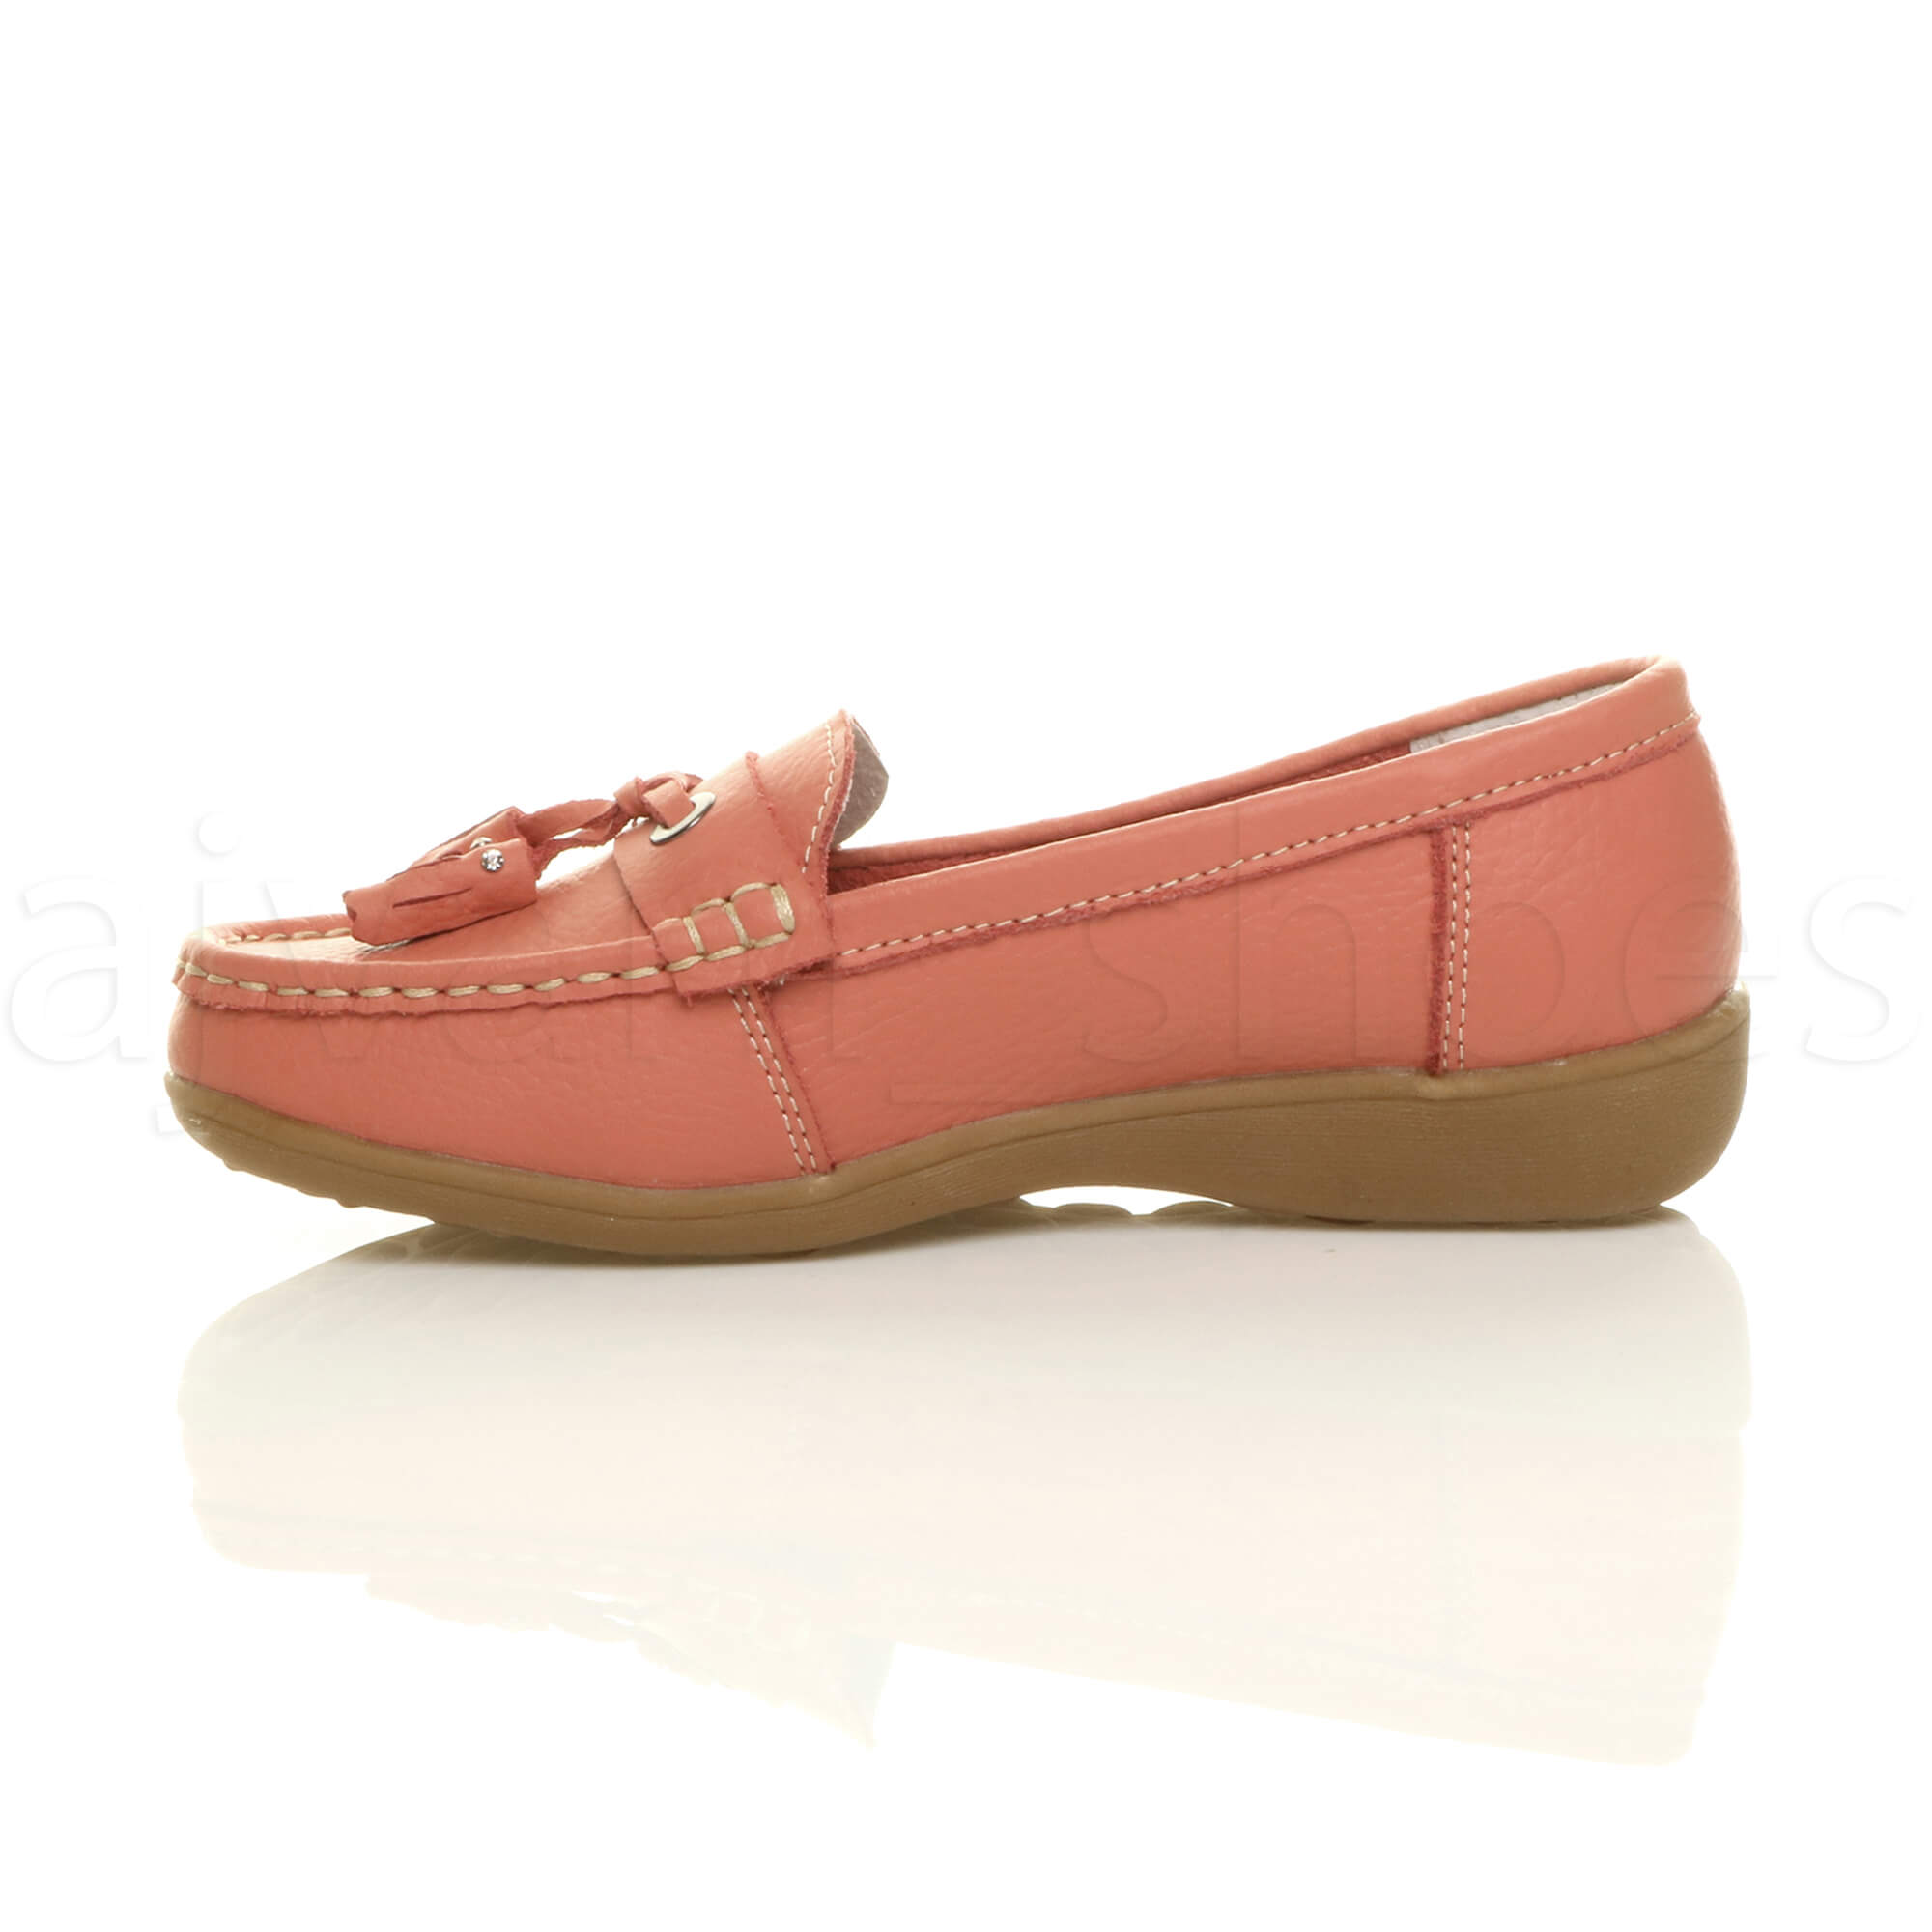 WOMENS-LADIES-LOW-HEEL-WEDGE-LEATHER-TASSEL-LOAFERS-COMFORT-MOCCASINS-SHOES-SIZE thumbnail 28